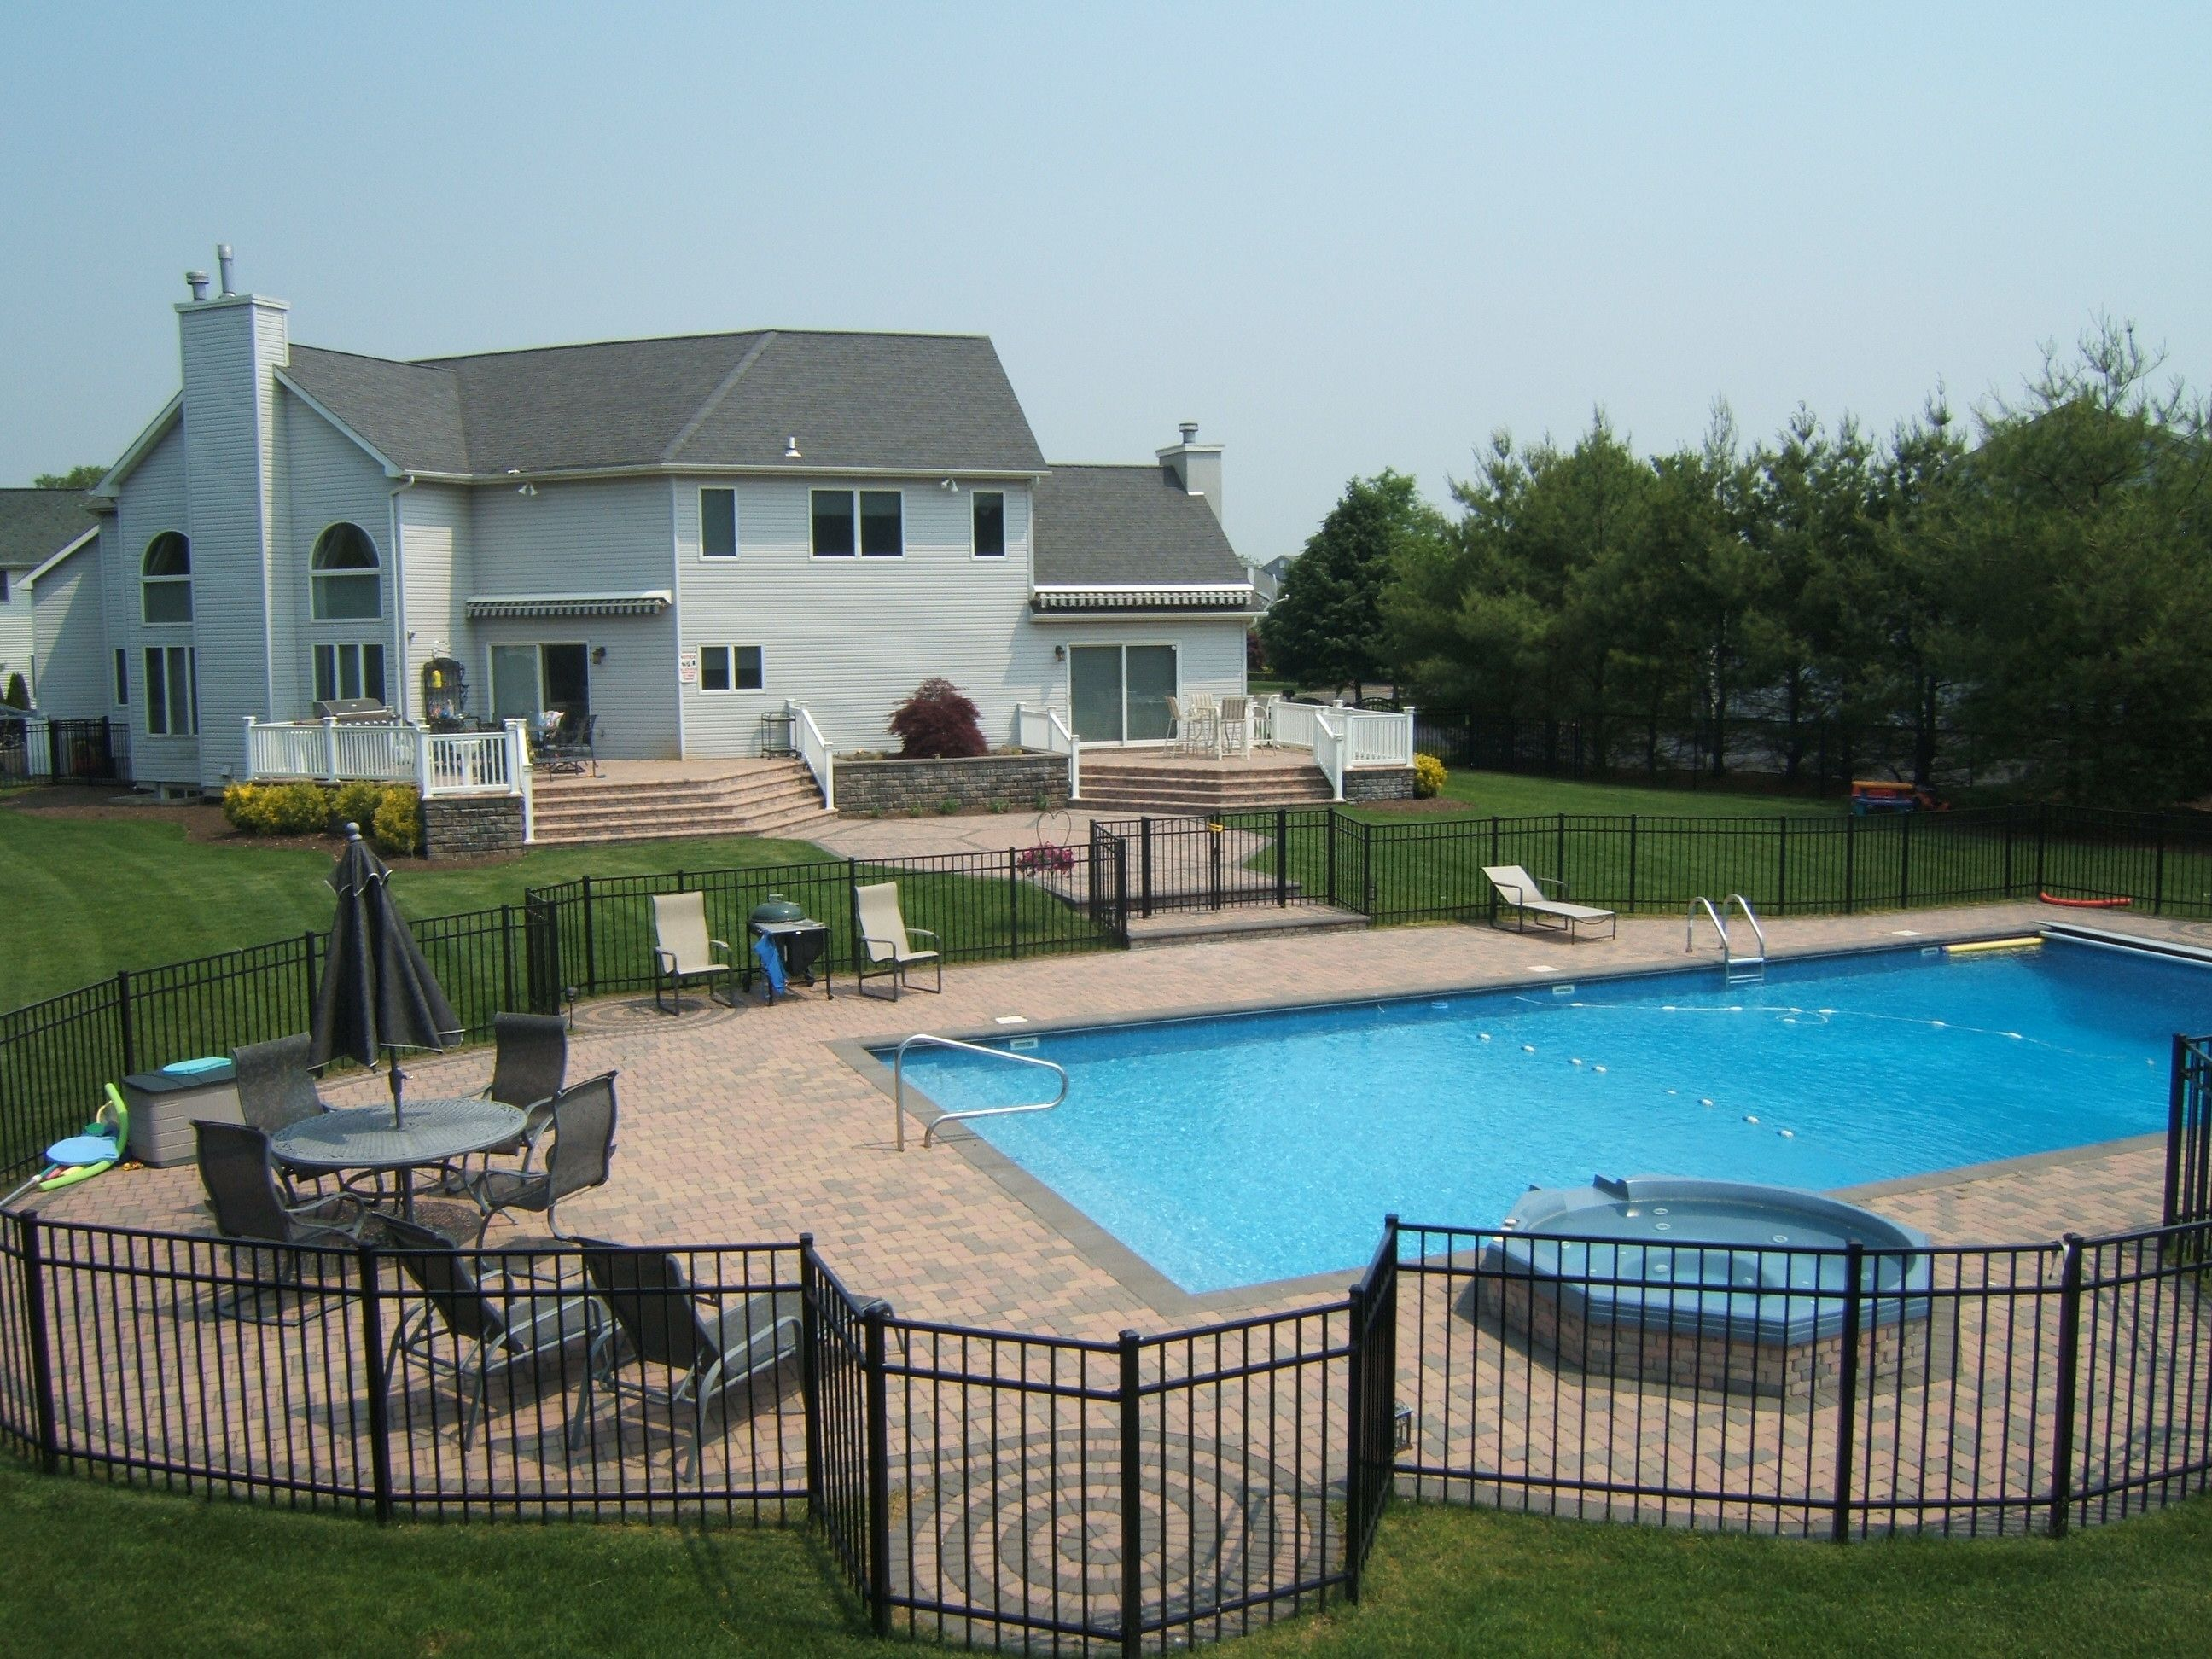 Award Winning Back Yard Wirth Combination Of Swimming Pools, Patios, Raised  Patio And Stairs